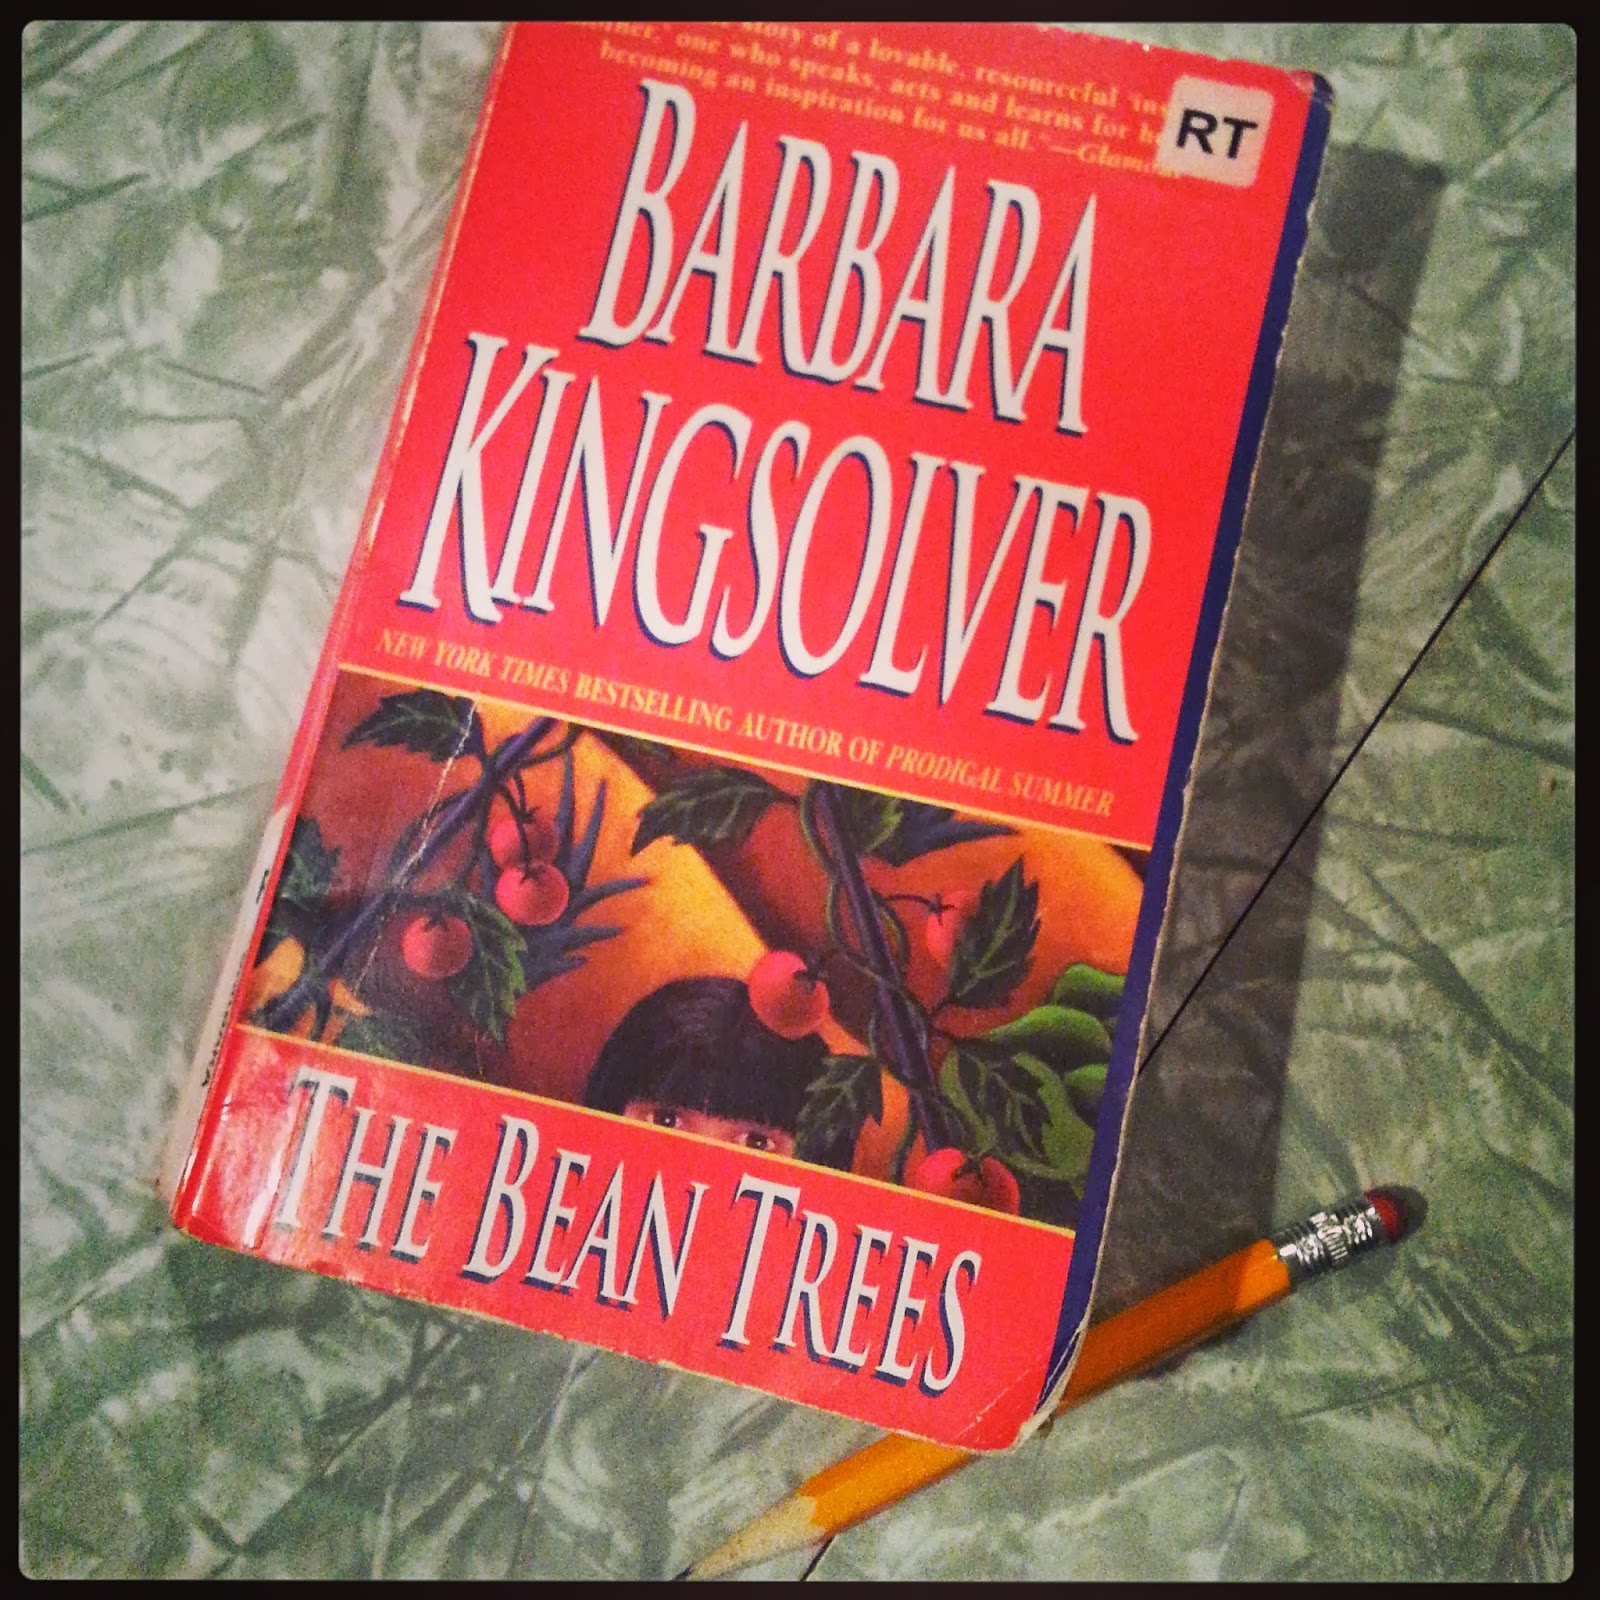 a summary of the book the bean trees by barbara kingsolver Free study guide for the bean trees by barbara kingsolver-booknotes upon crossing the pittman line, missy makes two promises to herself - one to change her name to the name of the first place she ran out of gas, the other, to settle down wherever her windowless, push start volkswagen.